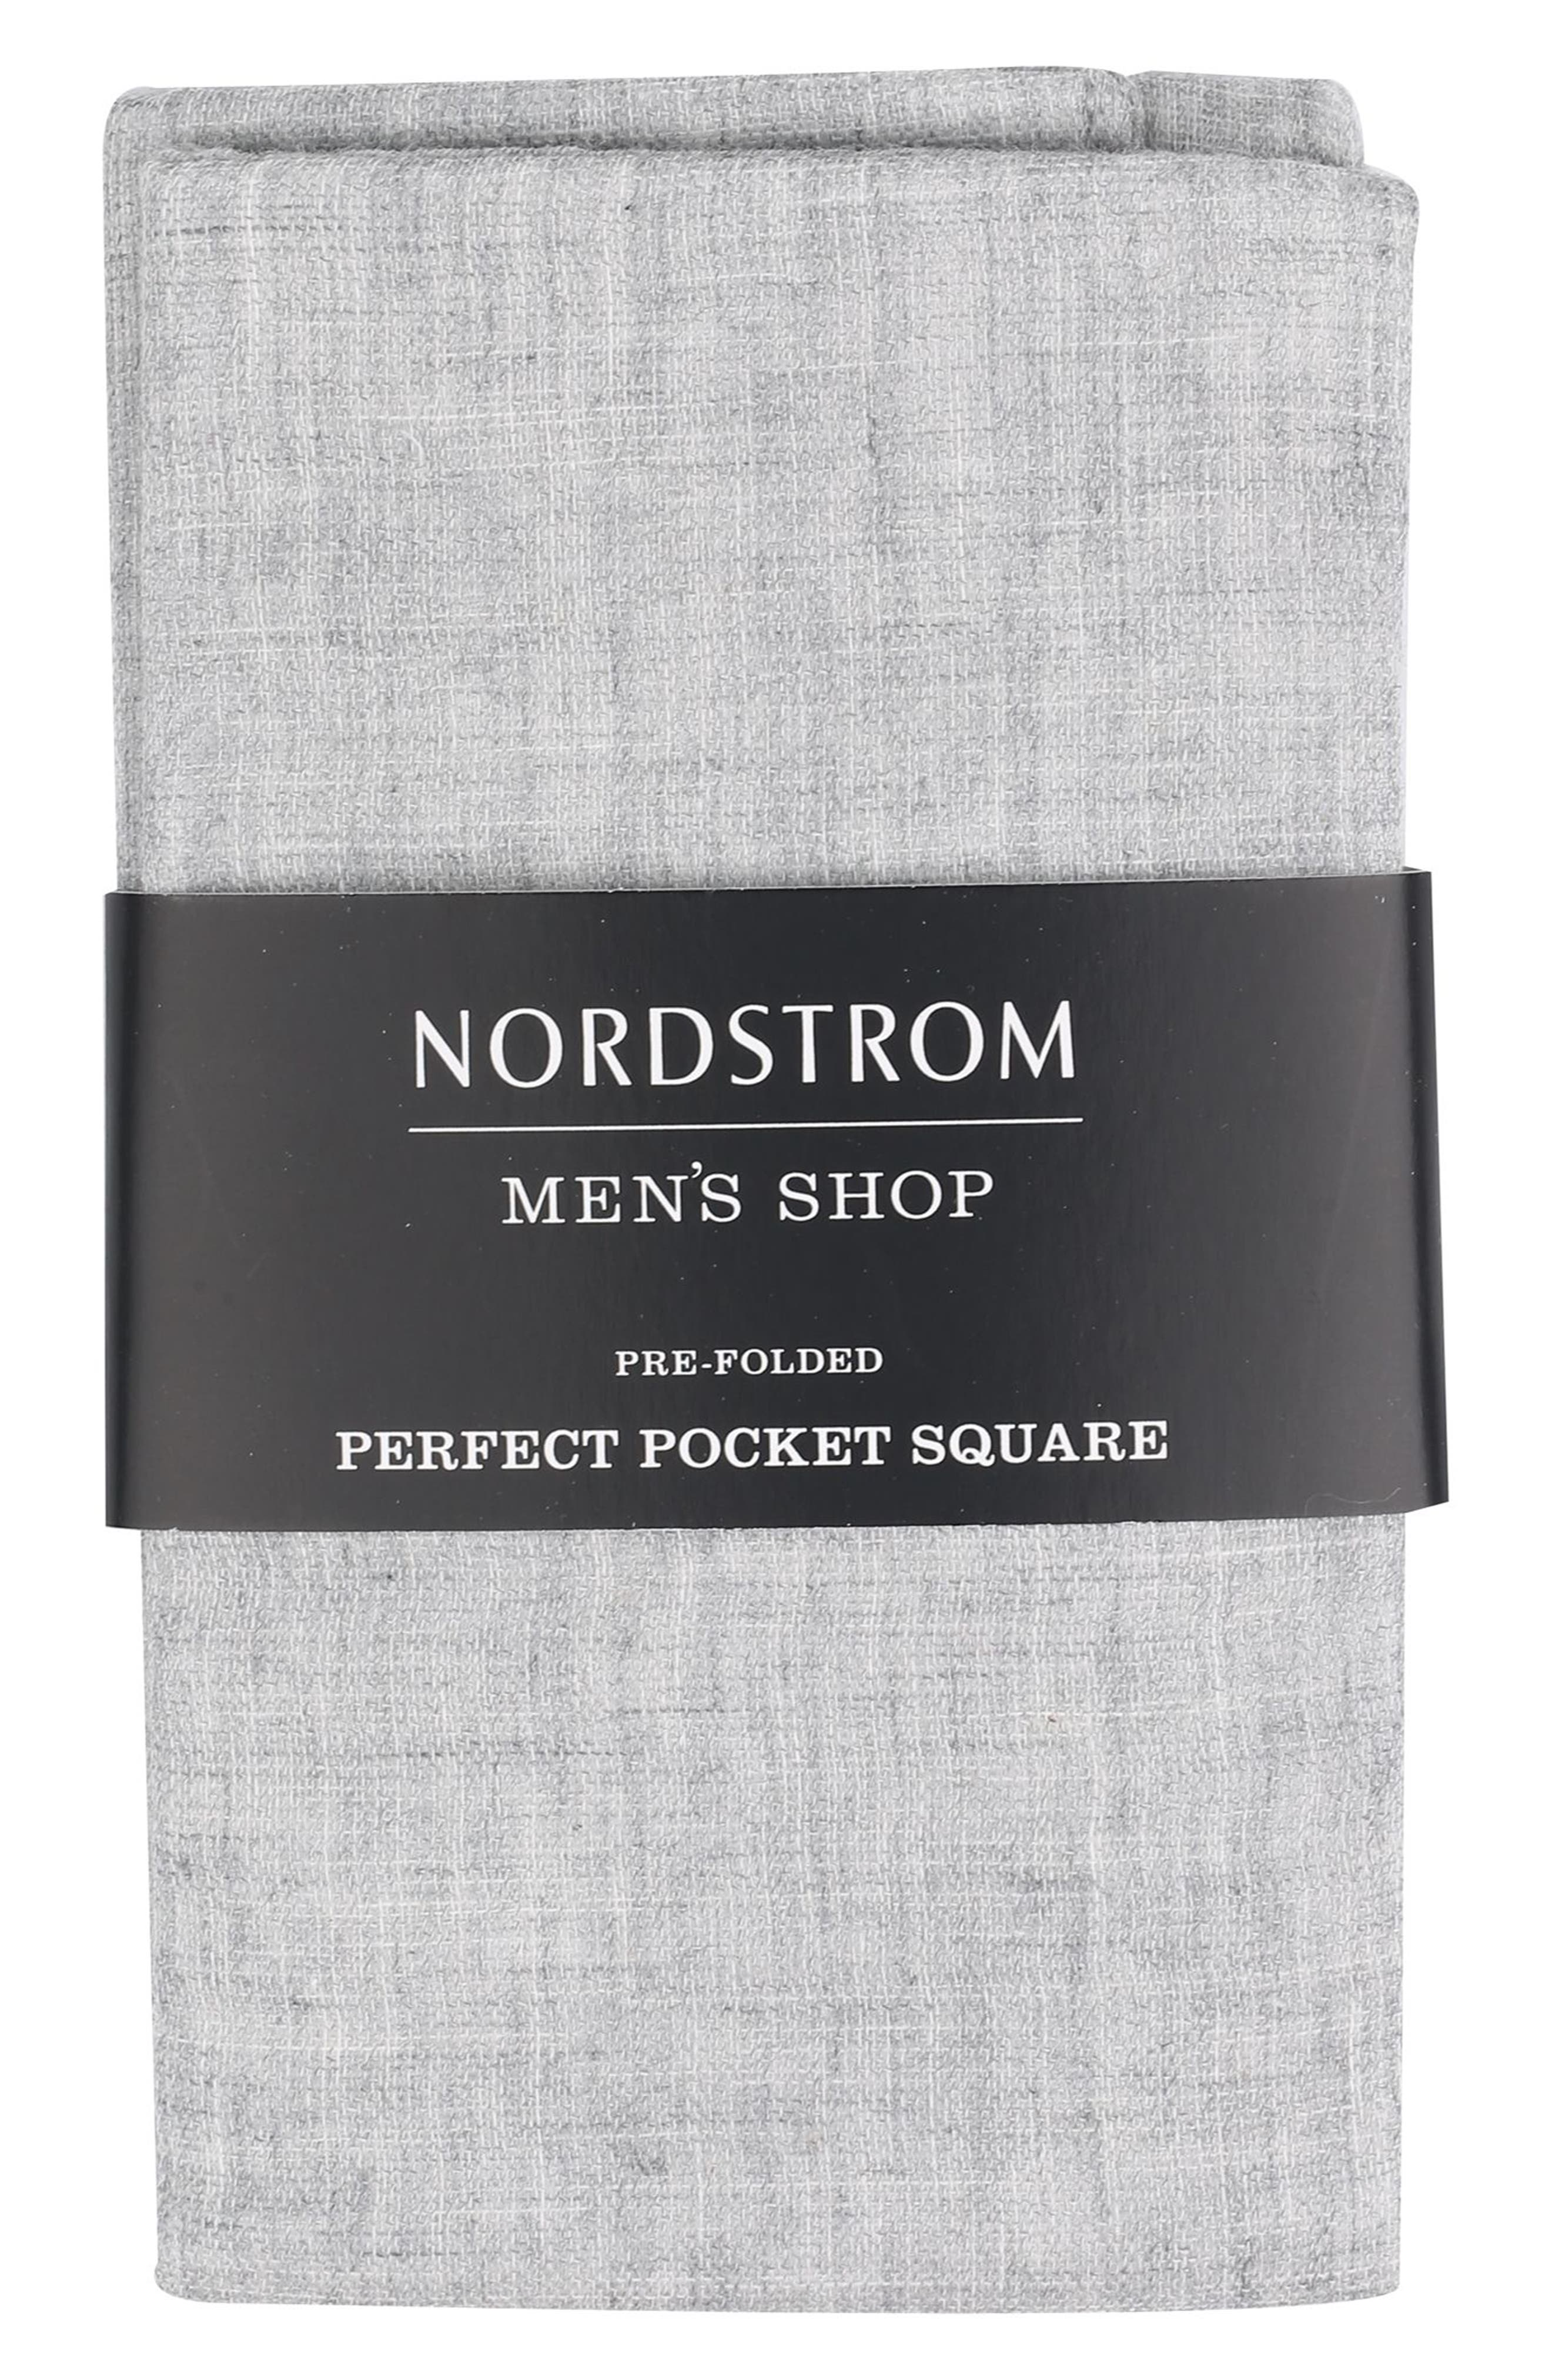 Nordstrom Men's Shop The Perfect Pre-Folded Pocket Square